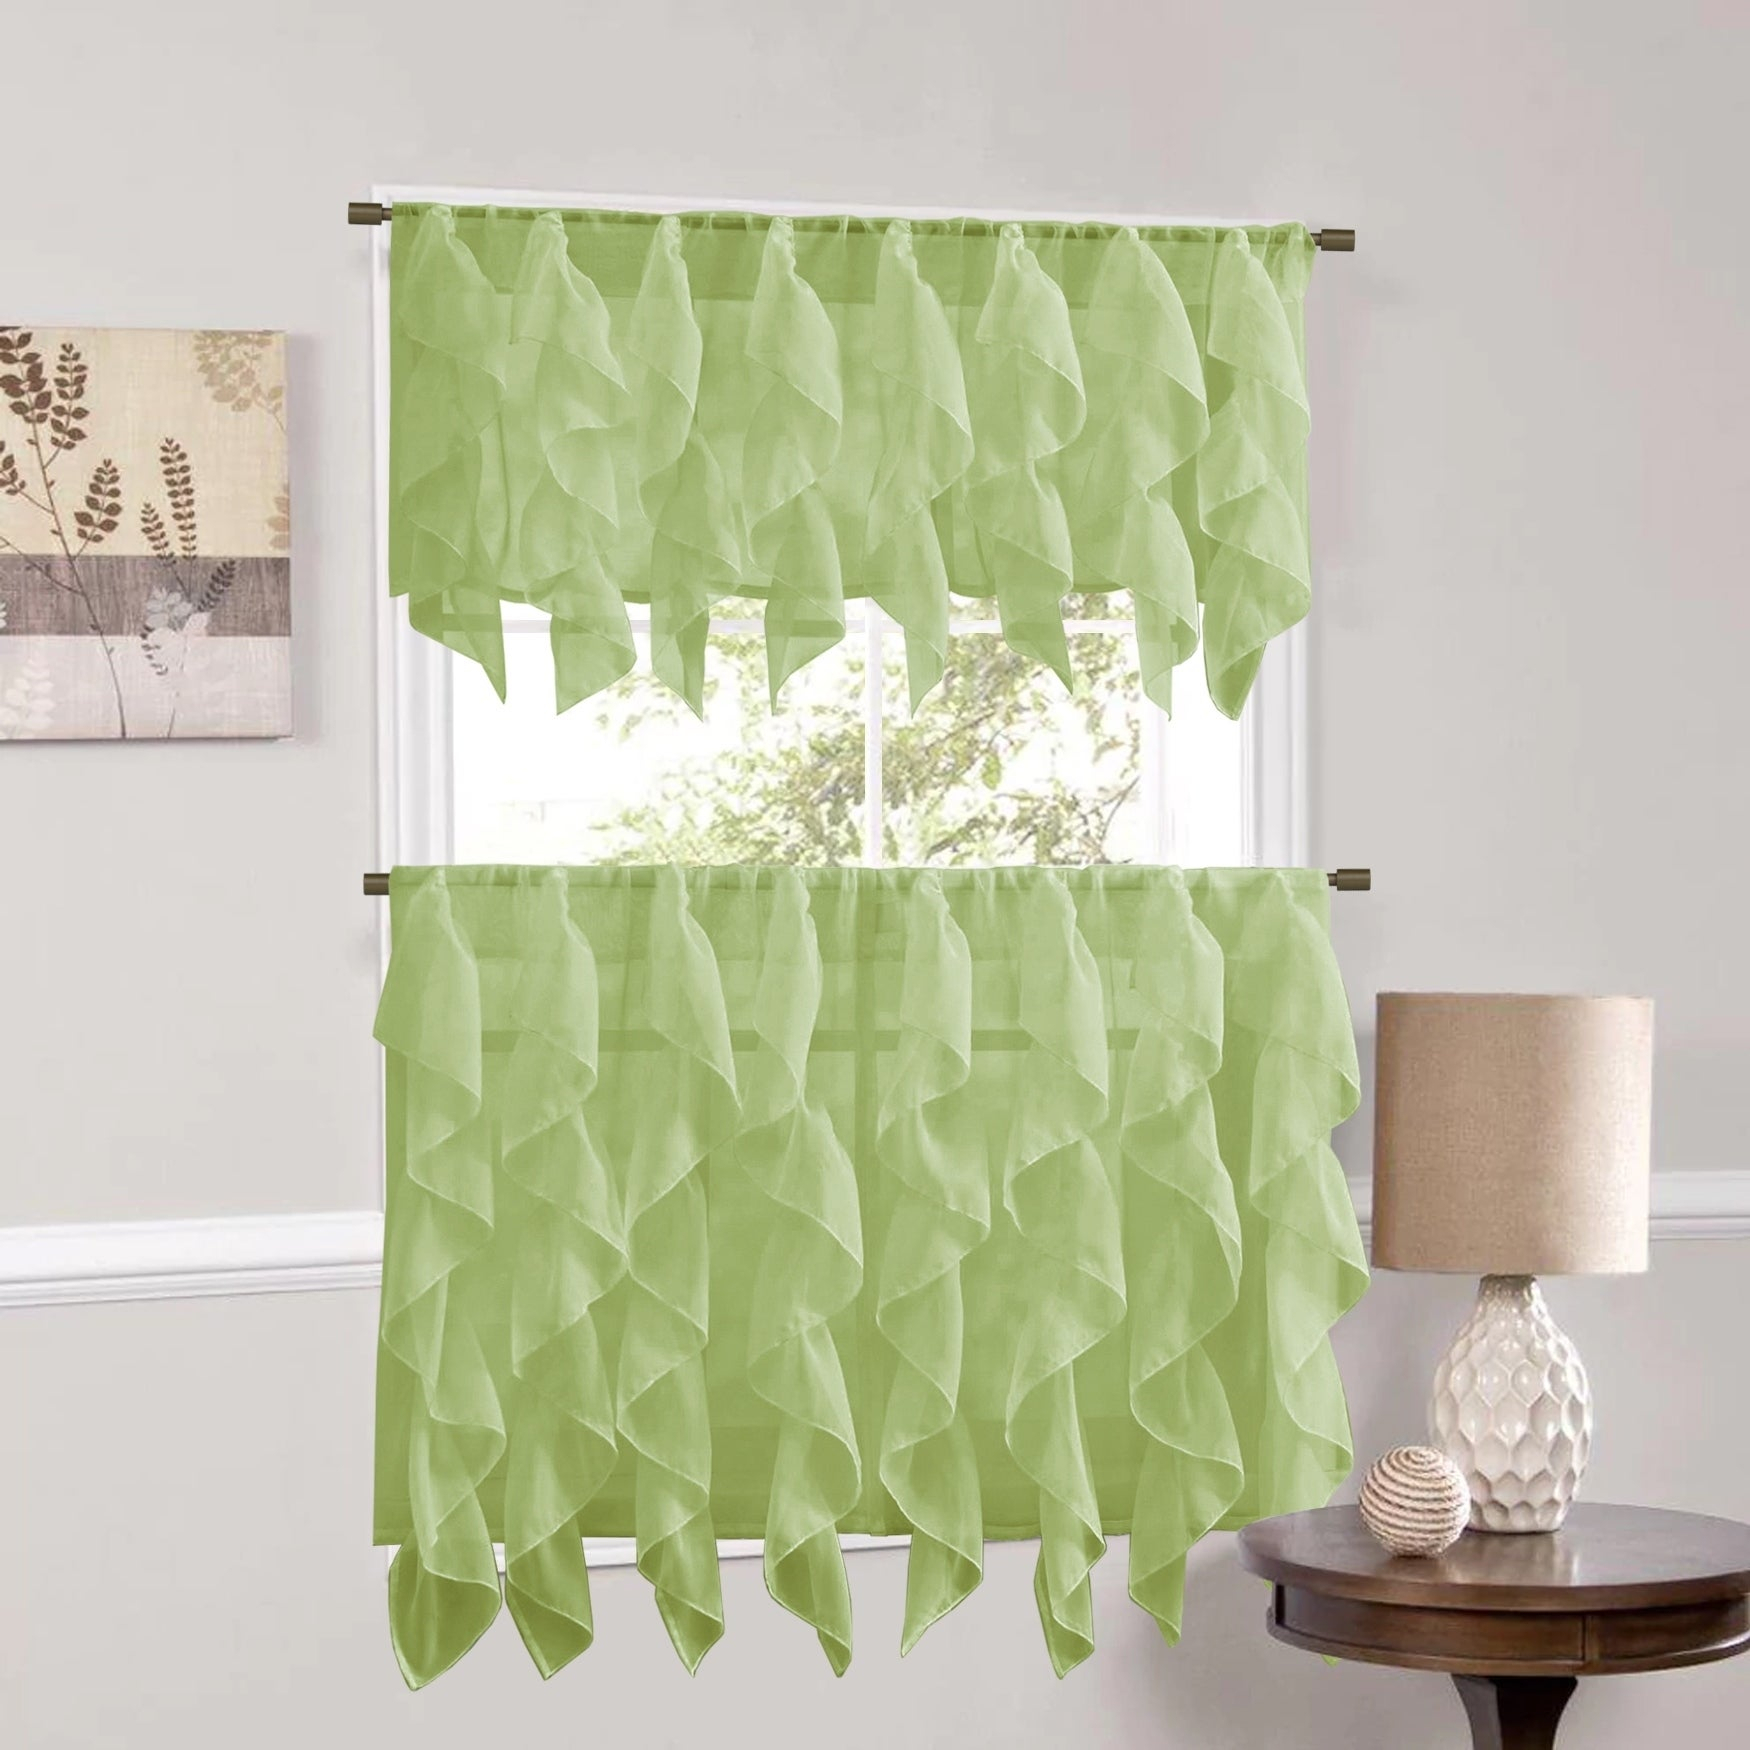 Buy Machine Wash Curtain Tiers Online At Overstock | Our inside Dexter 24 Inch Tier Pairs in Green (Image 6 of 20)